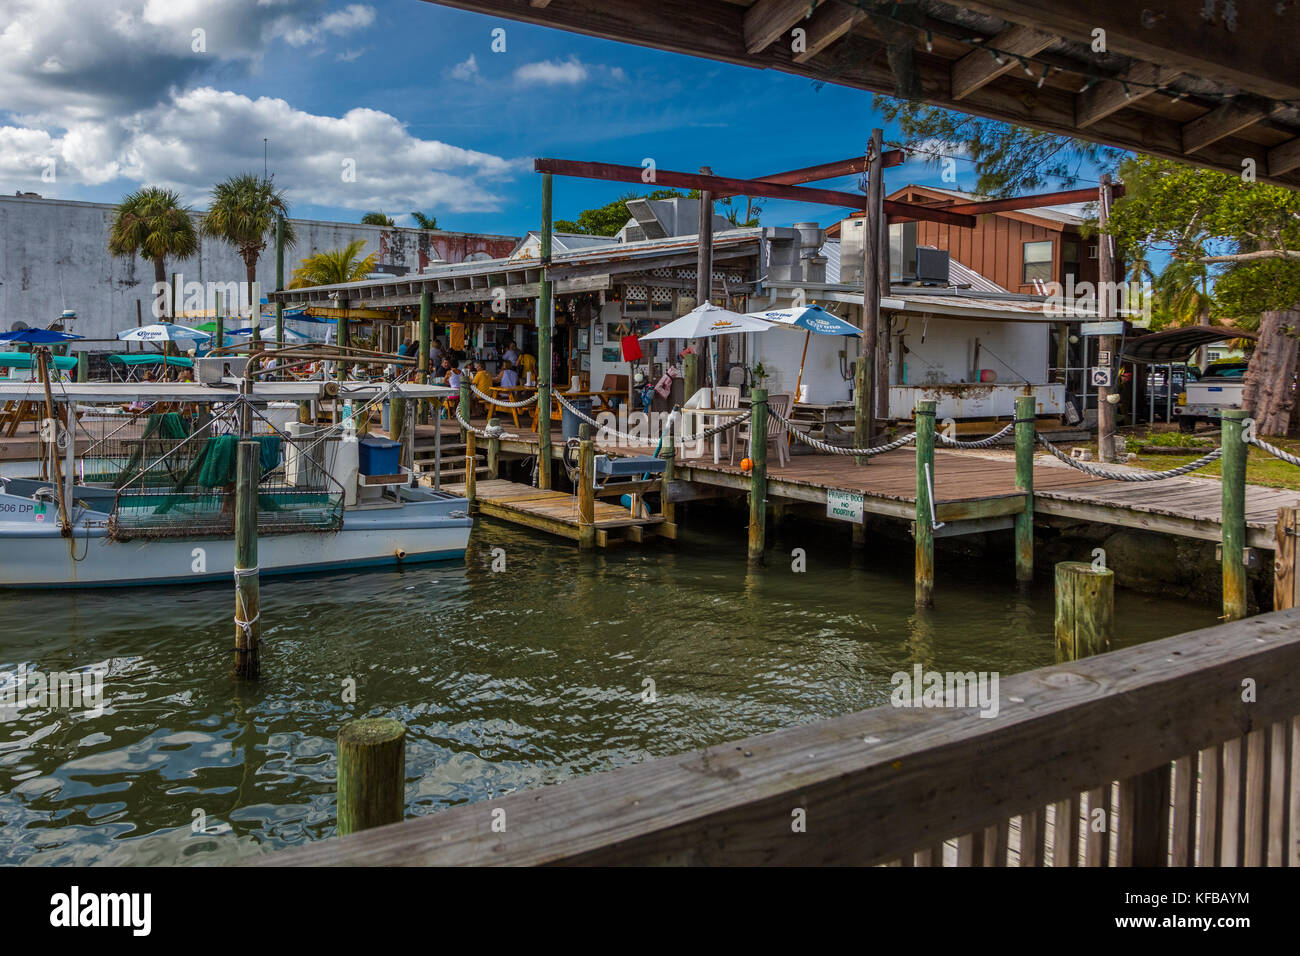 Star Fish Co Seafood Market and Dockside Restaurant in the historic Florida fishing village of Cortez in the United - Stock Image